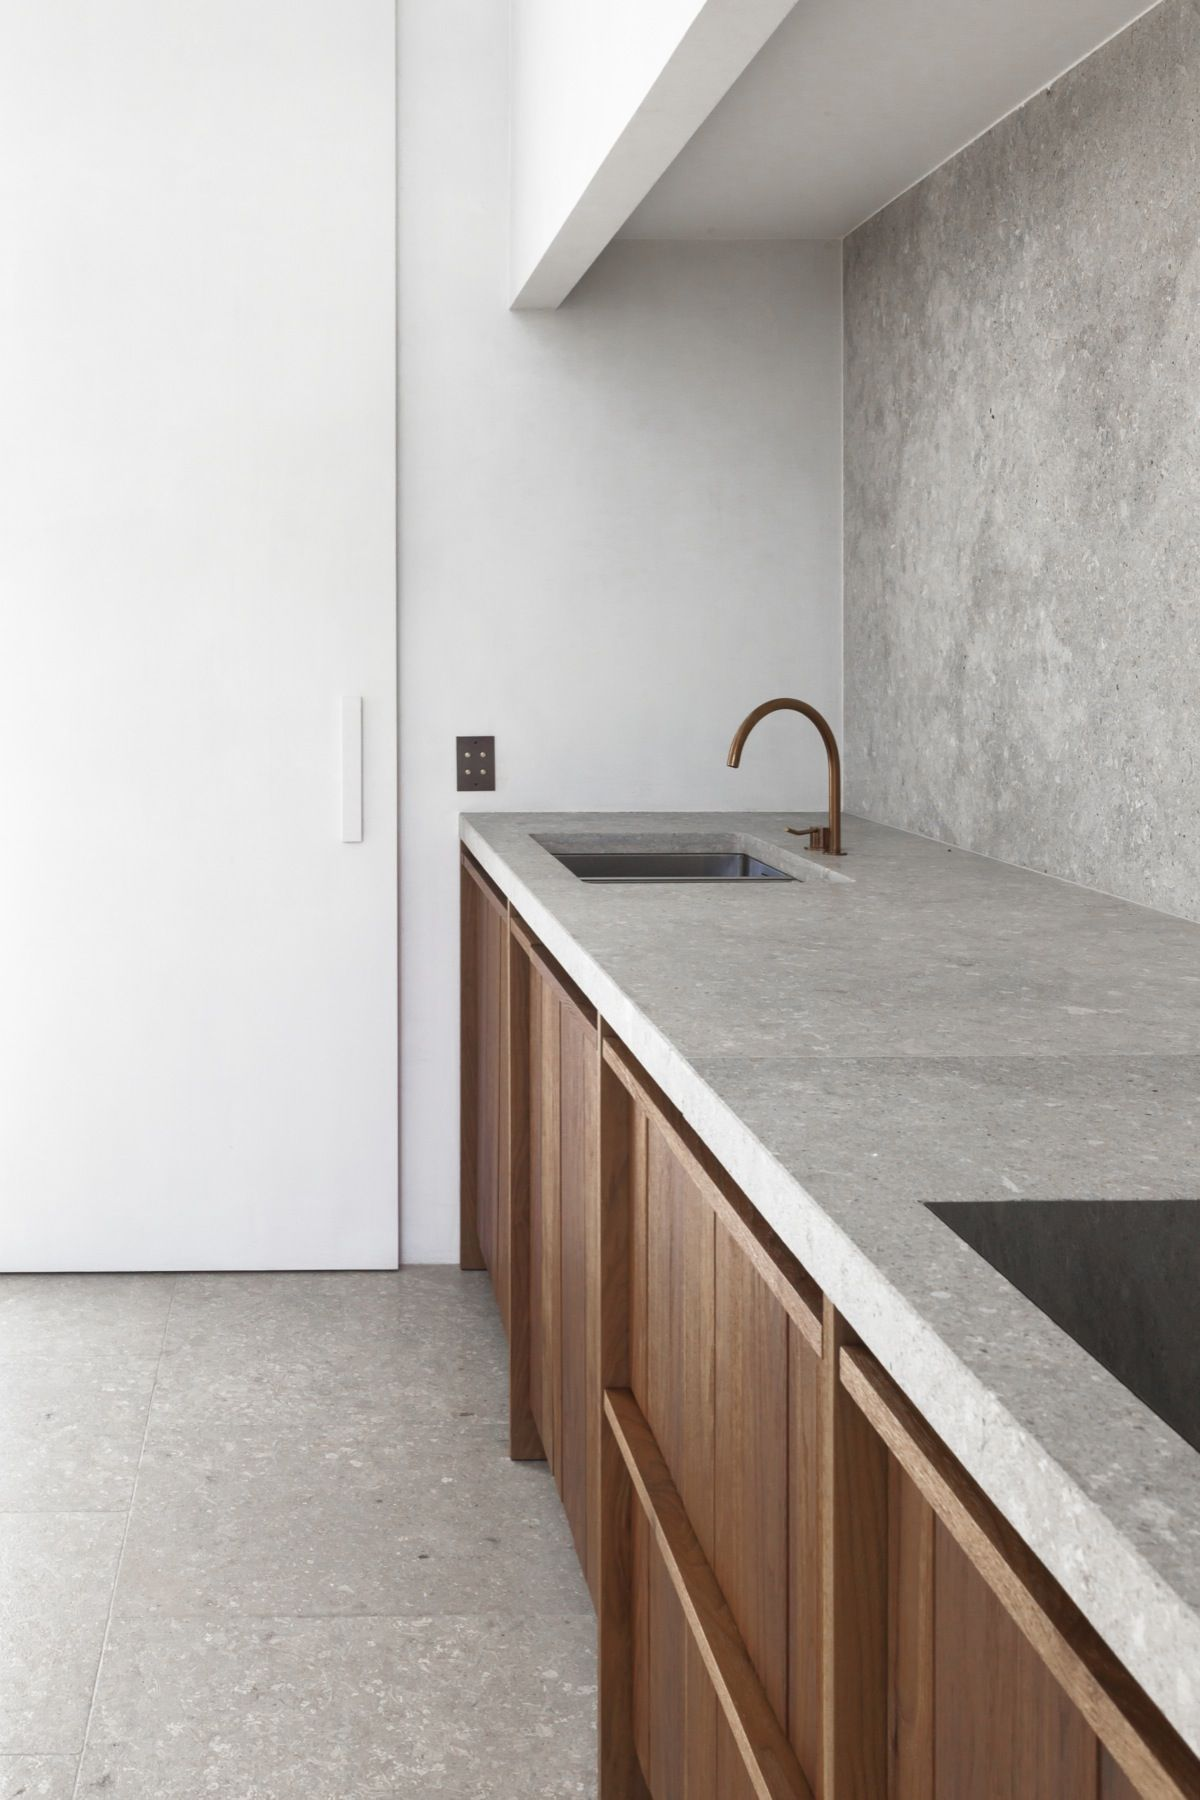 Composite Countertops Kitchen Swedish Knives Concrete I Absolutely Love Such